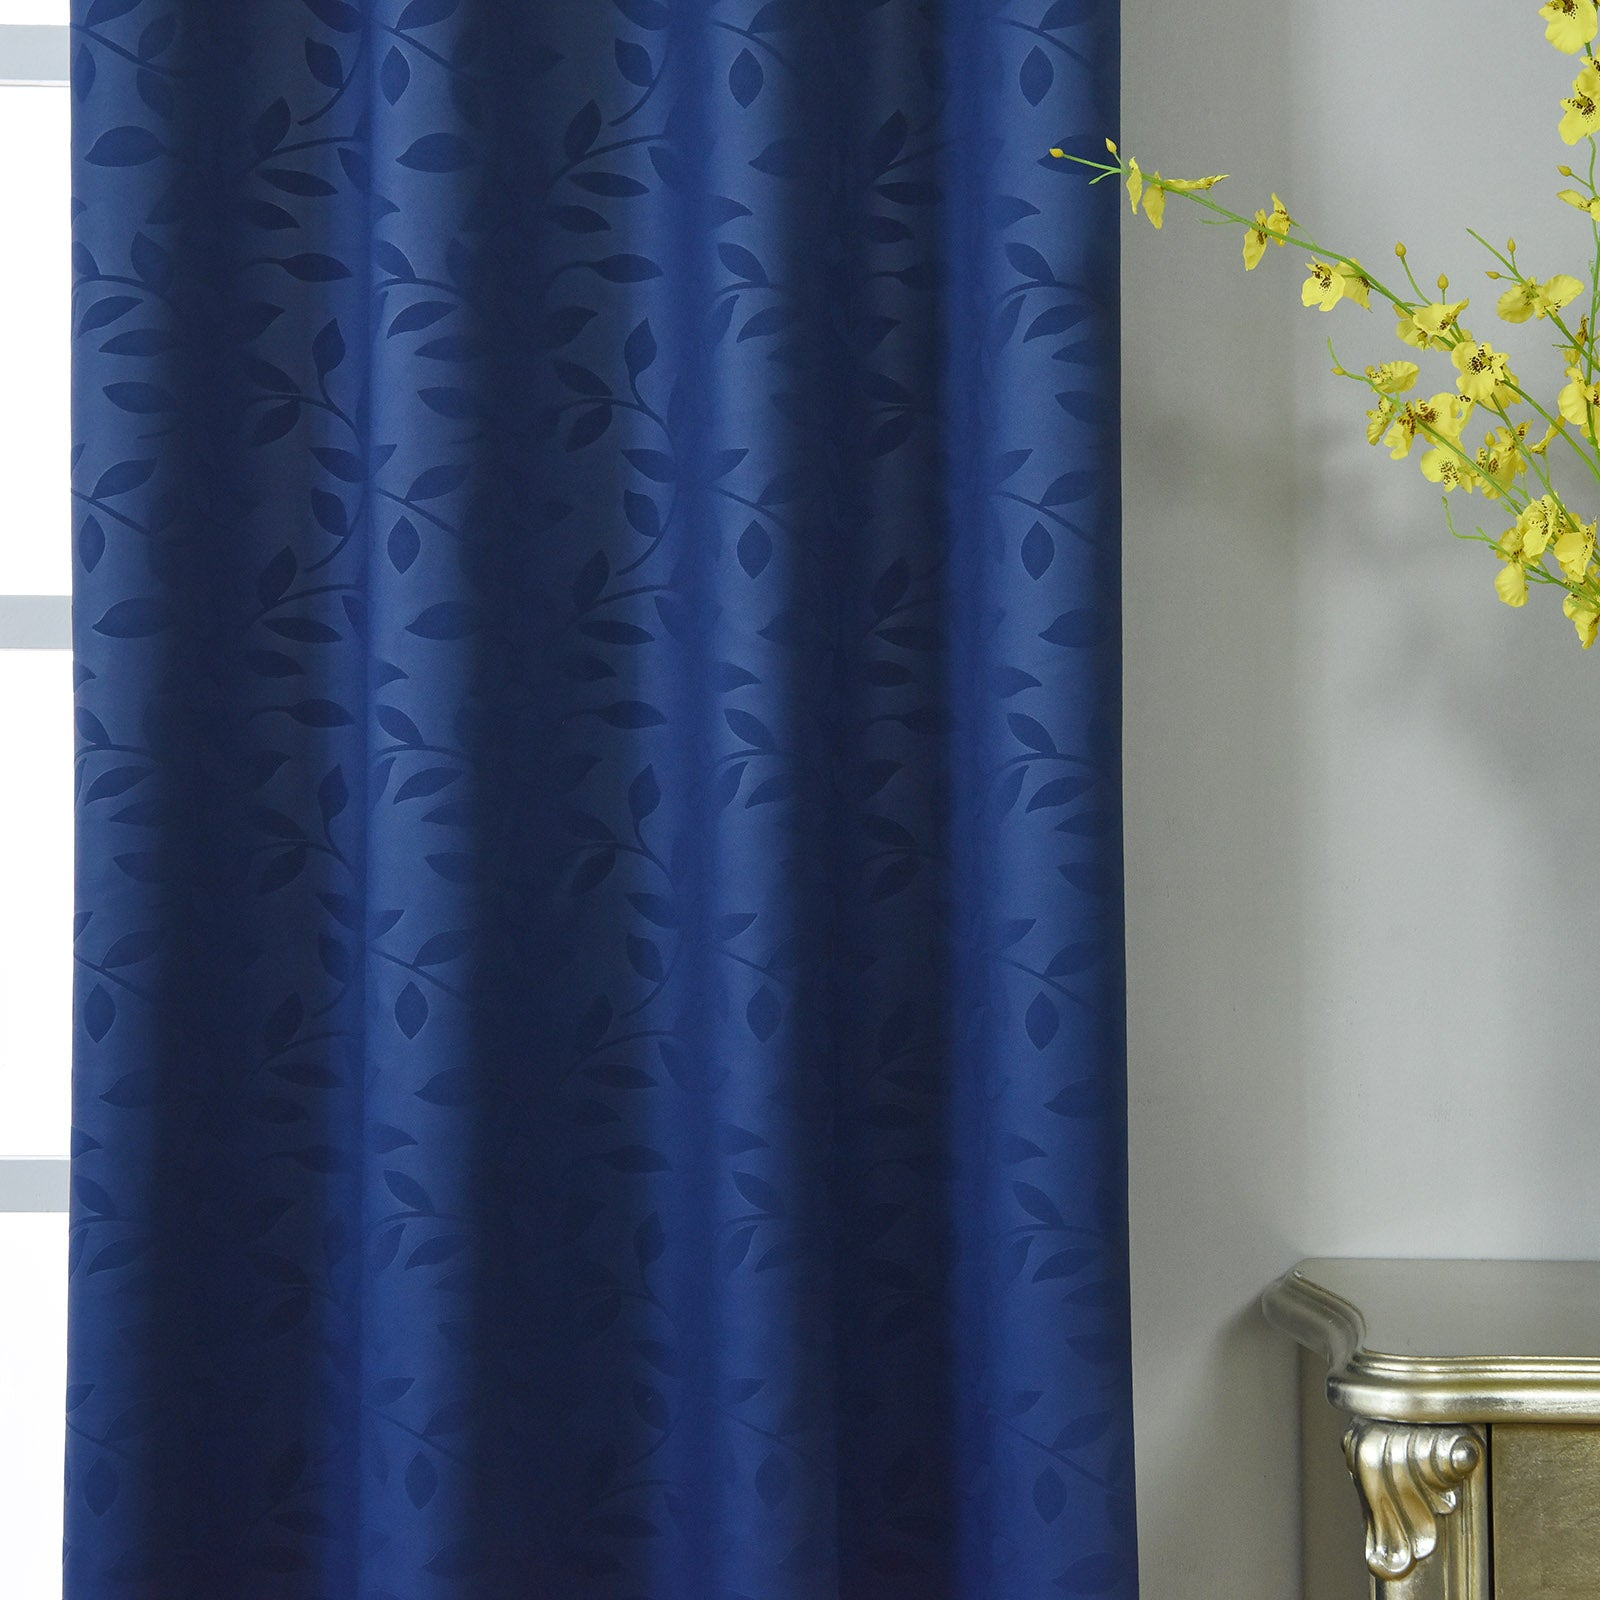 official pencil department curtain dye site plain blue curtainsandblinds next shop navy productaffiliation pleat blackout curtains homeware colour